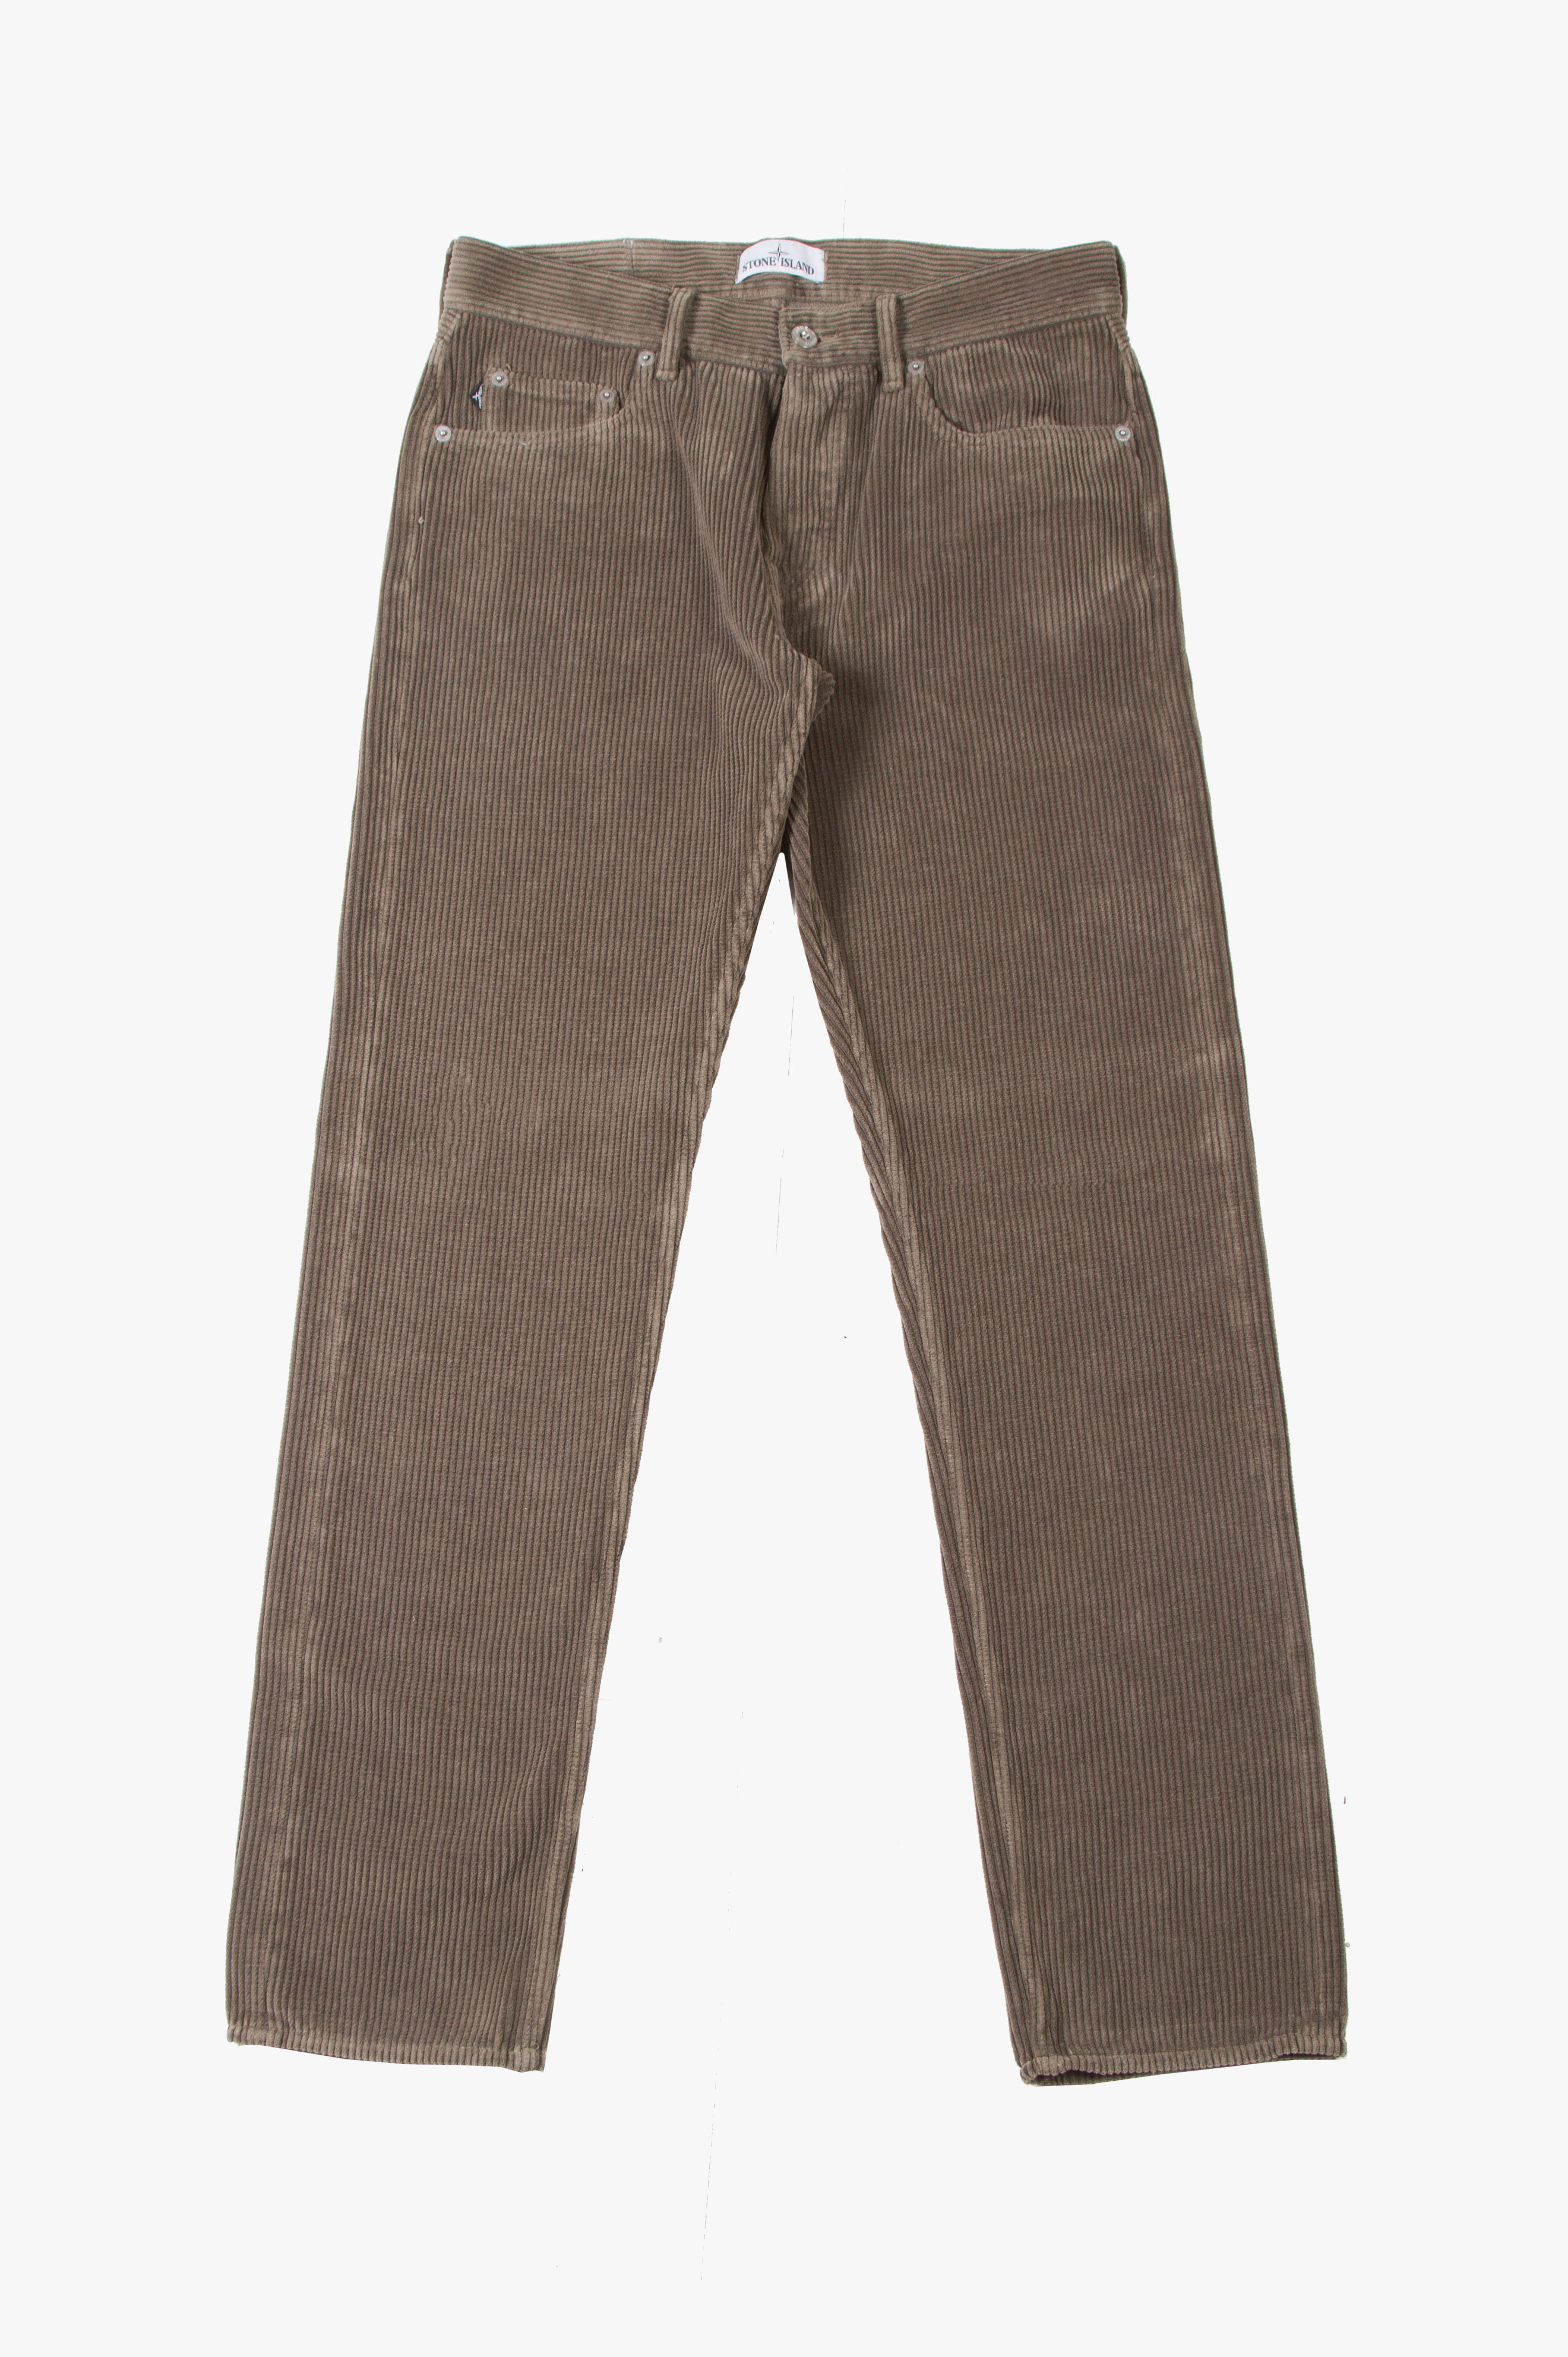 Corduroy Pant Olive Green